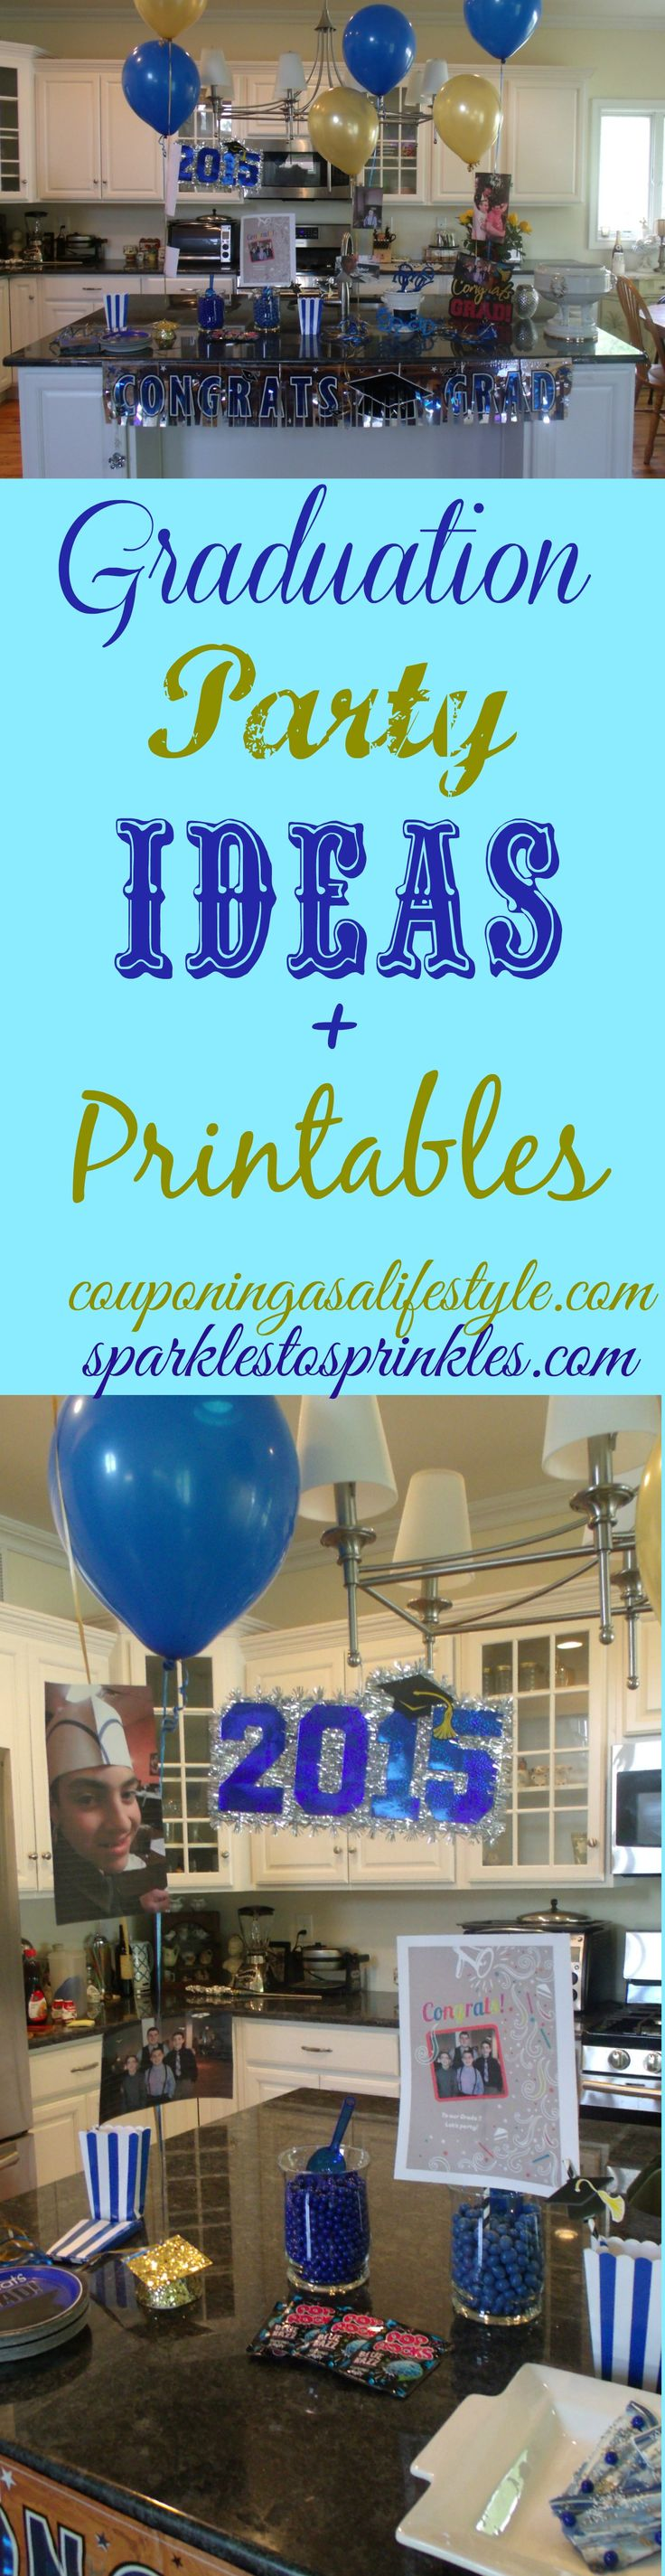 Check out this awesome Graduation party Great